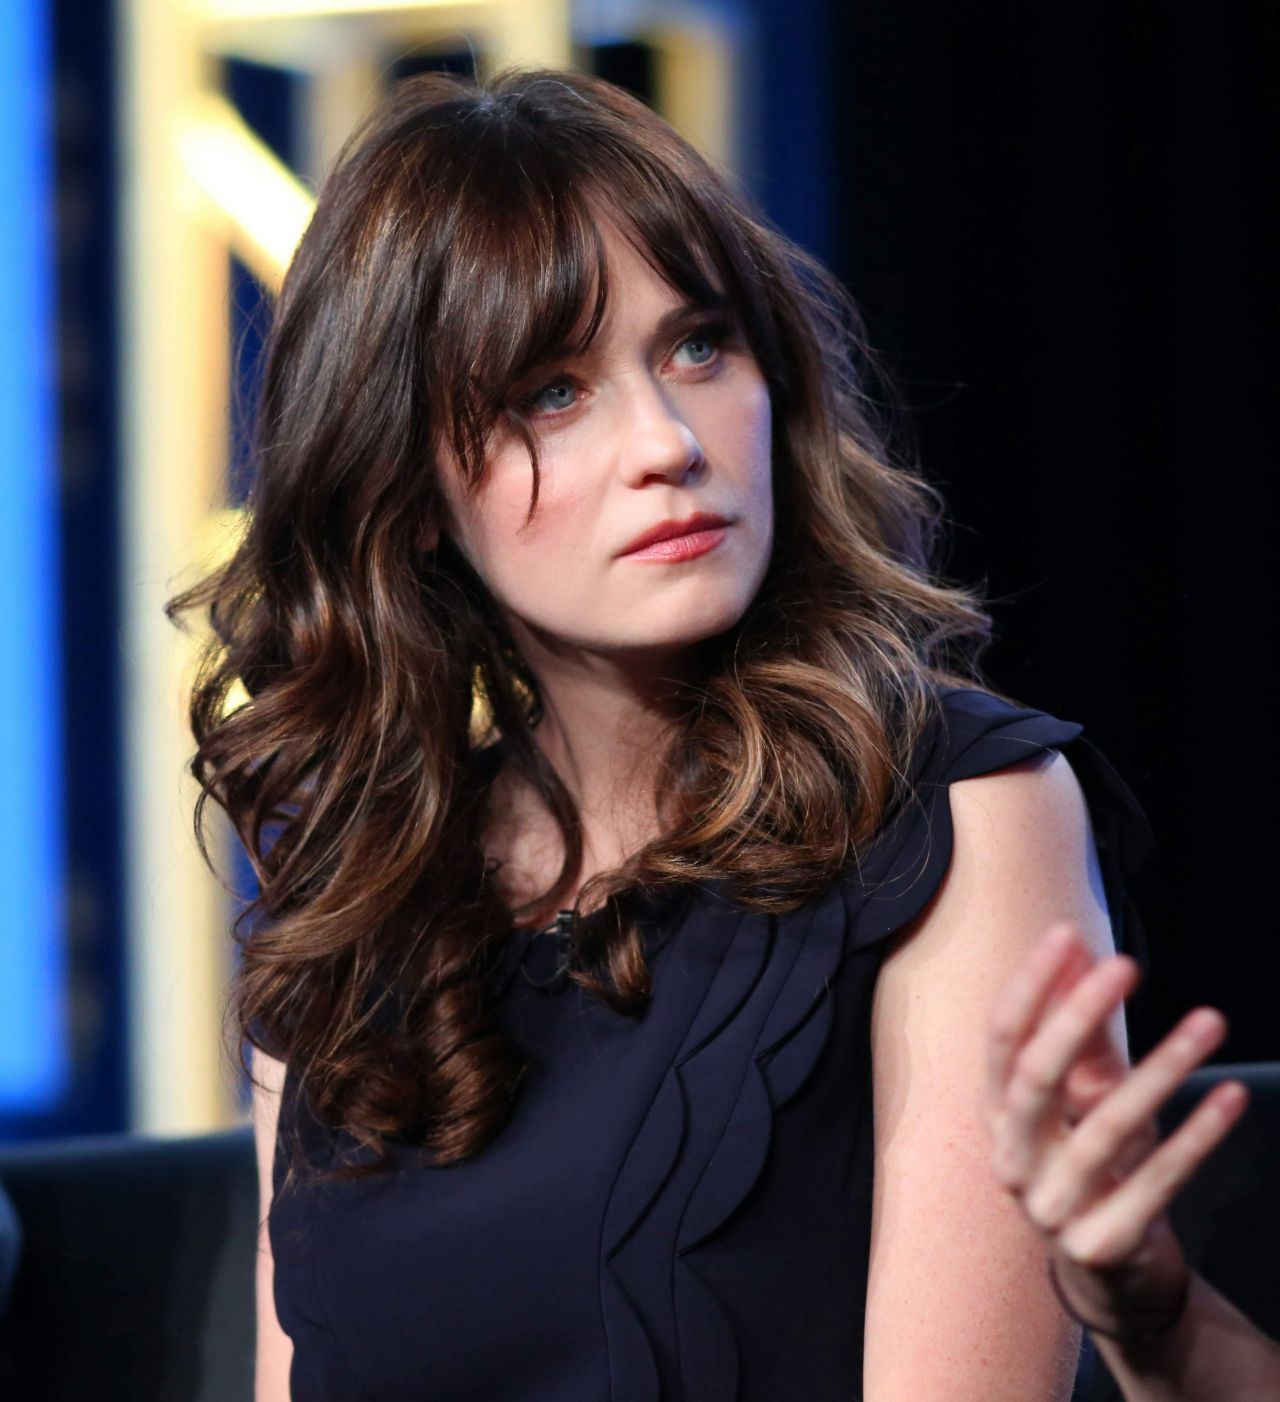 Zooey Deschanel Hairstyles In 2018 Zooey Deschanel Cgtkyzt Hair Styles Zooey Deschanel Hair Zooey Deschanel Hair Styles